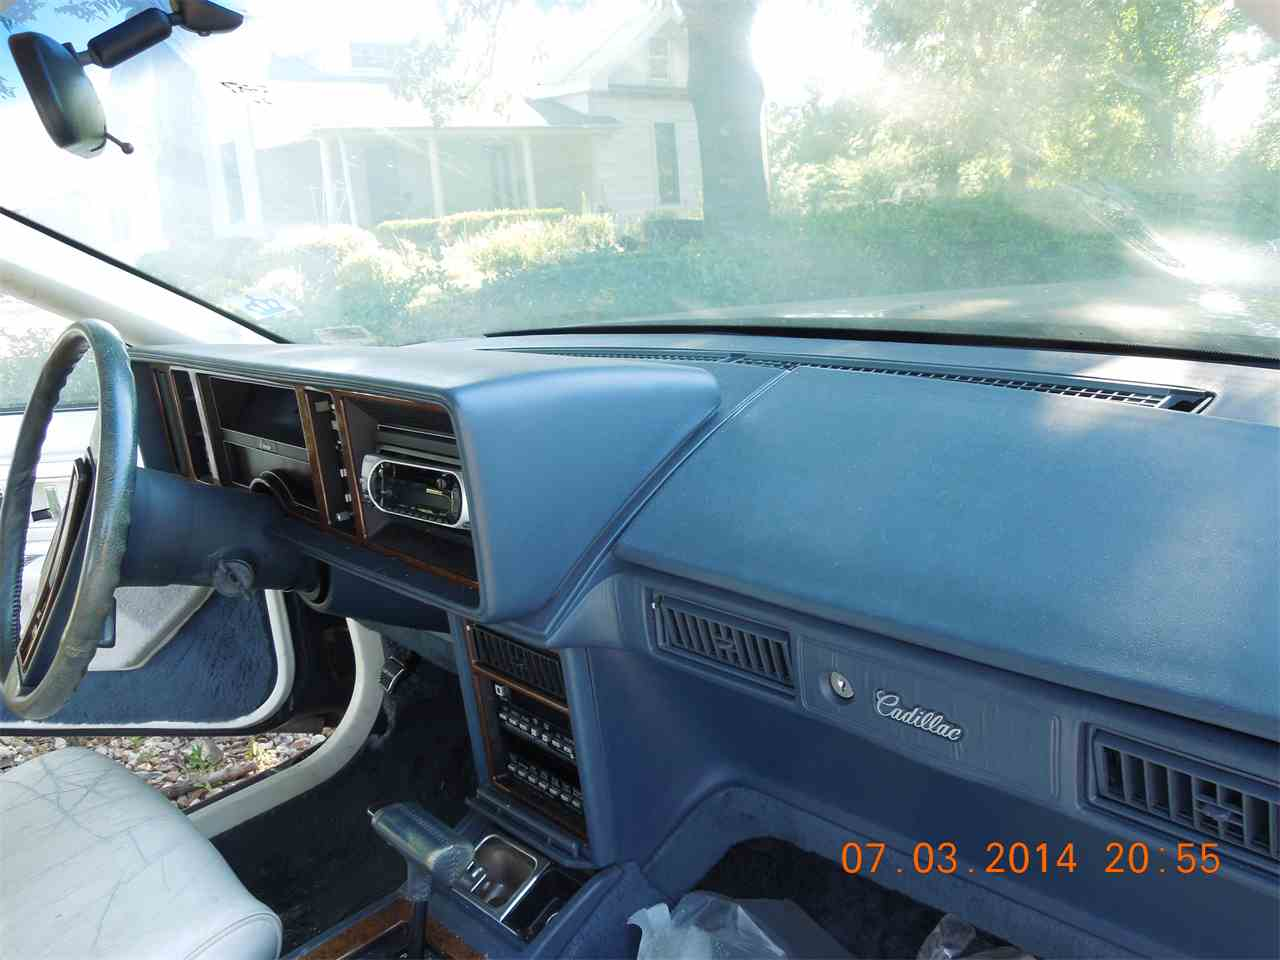 Large Picture of 1989 Cadillac Eldorado located in Missouri - $1,495.00 Offered by a Private Seller - E88R